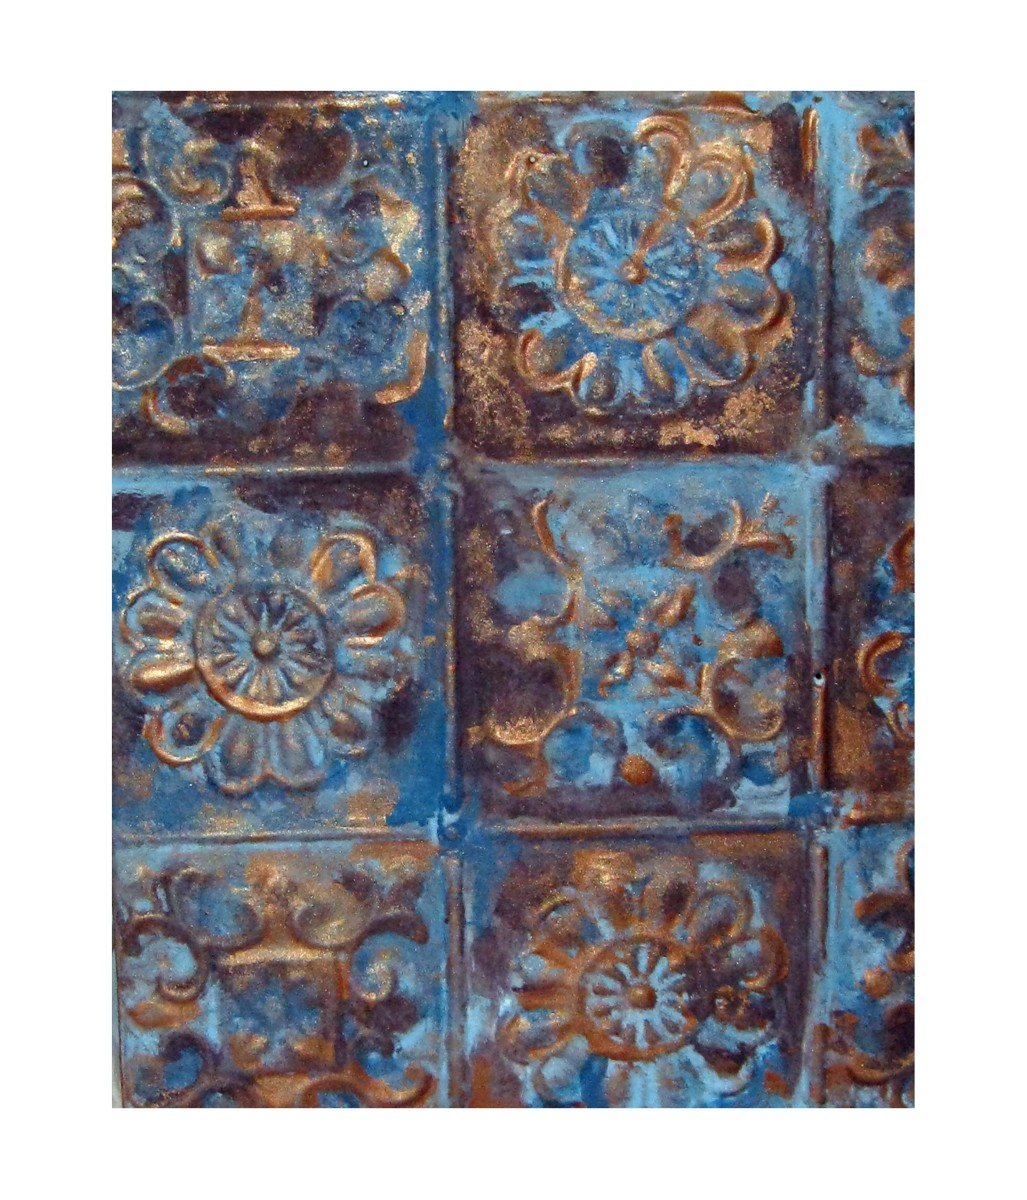 Tin ceiling panel wall hanging.